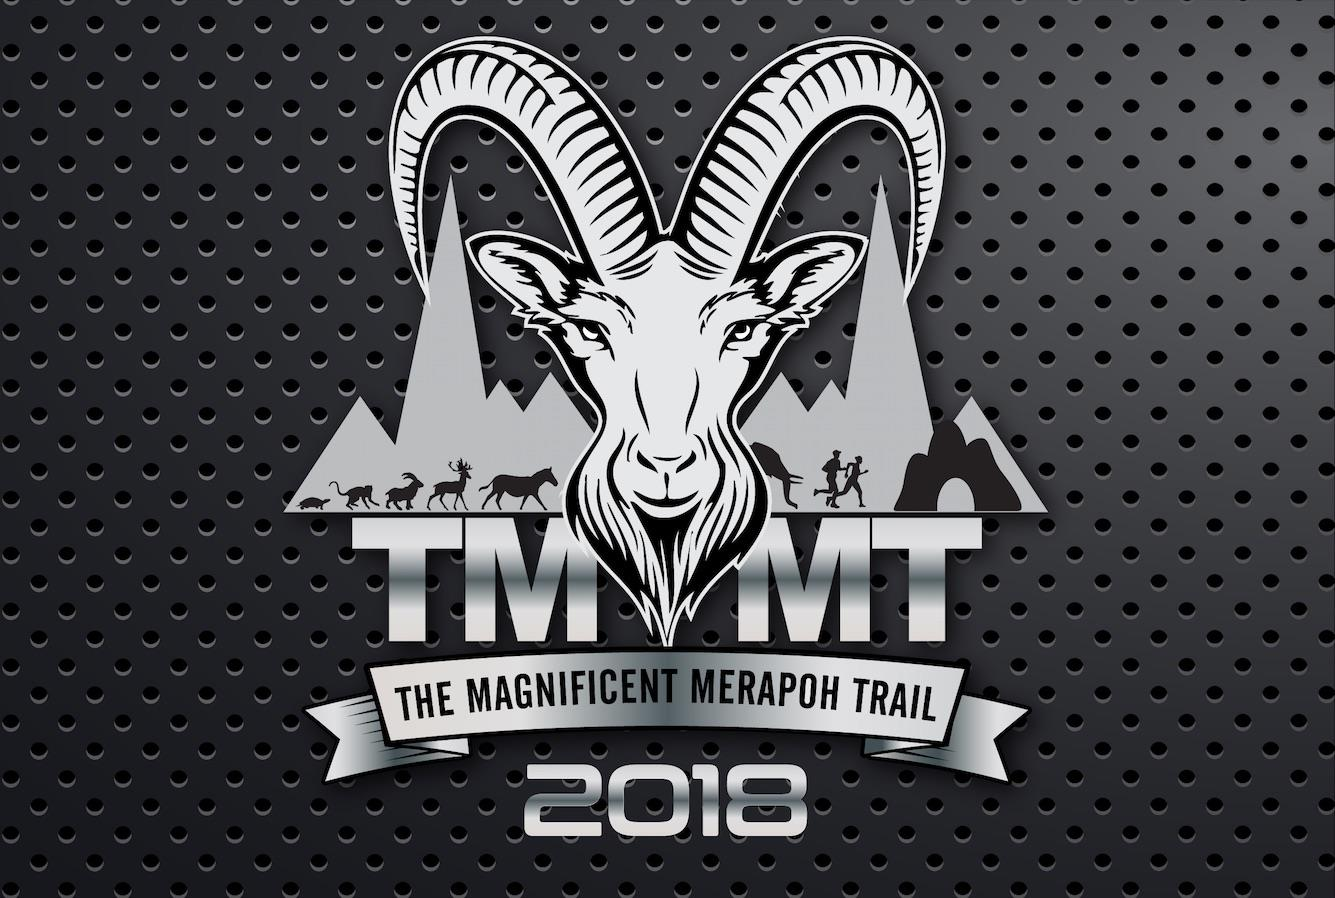 The Magnificent Merapoh Trail 2018  ( TMMT  2018 )